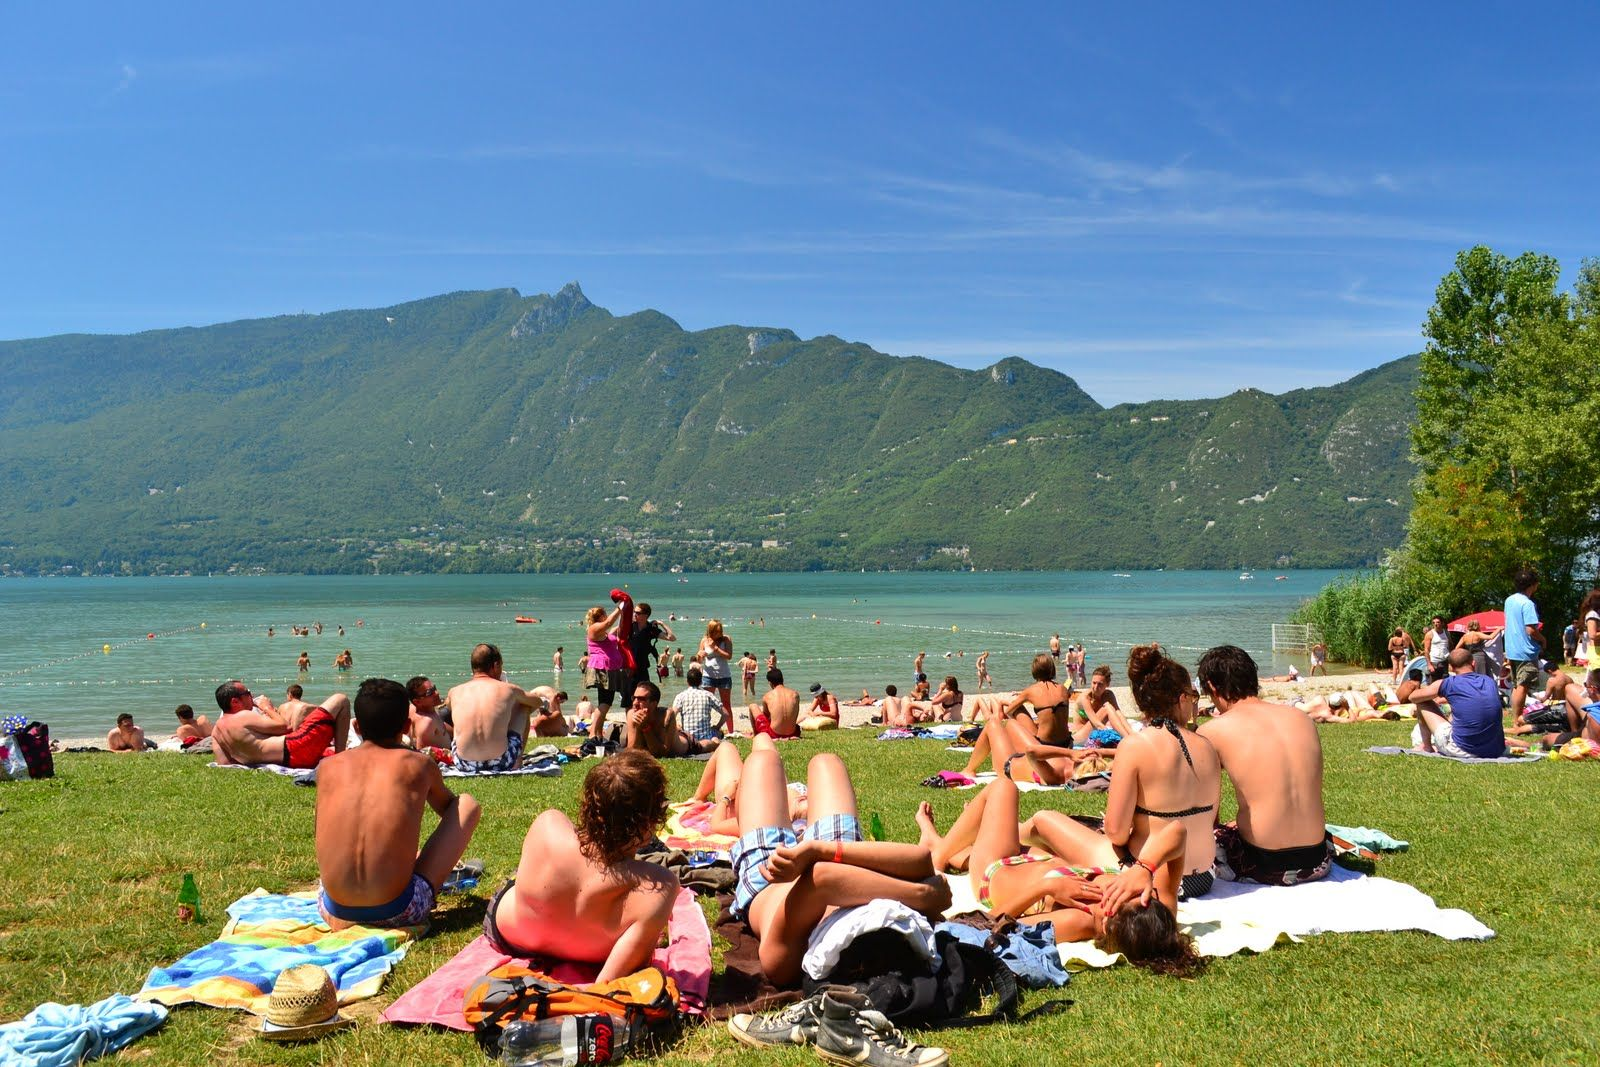 beach of aix les bains in the french alps, the lake of bourget